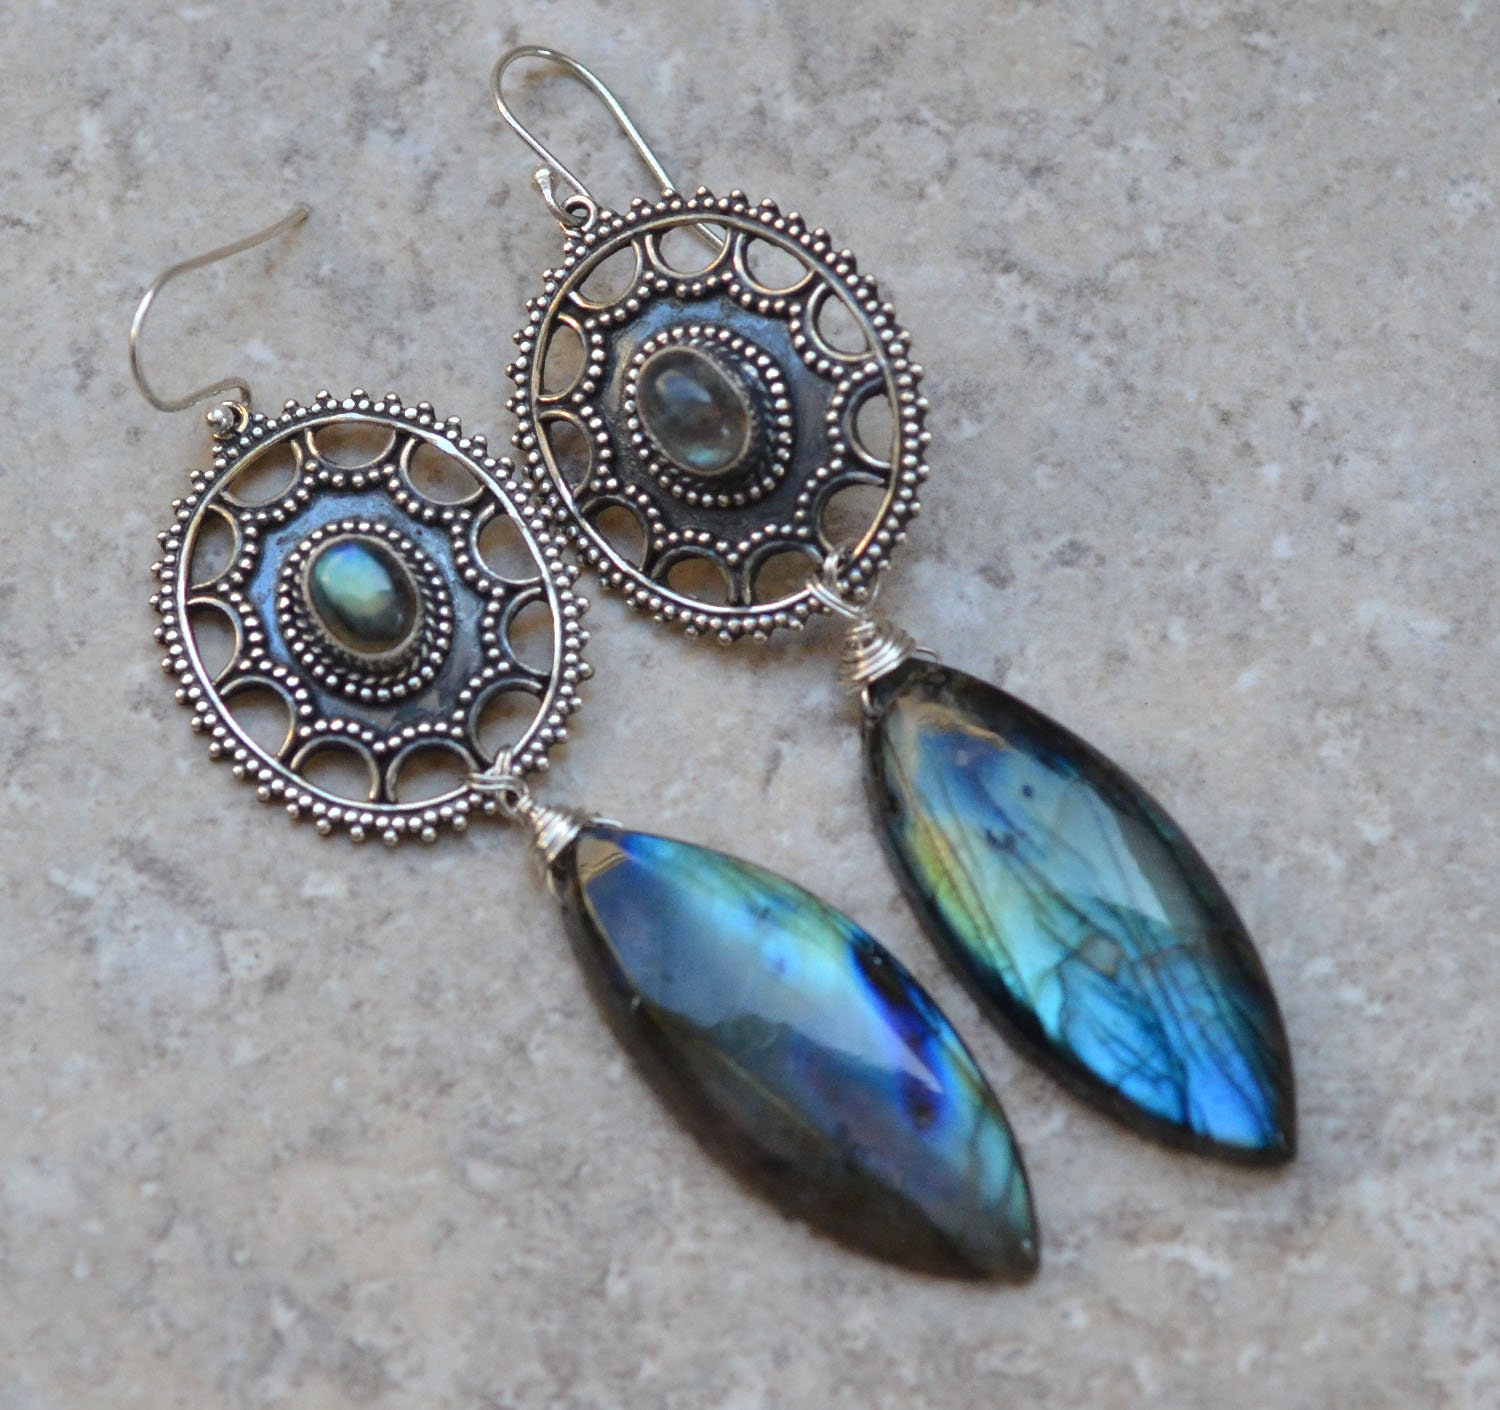 Extra large labradorite sterling silver earrings. Spectacular blue labradorite earrings. Silversmith. Art Deco Style. Fine Jewelry.